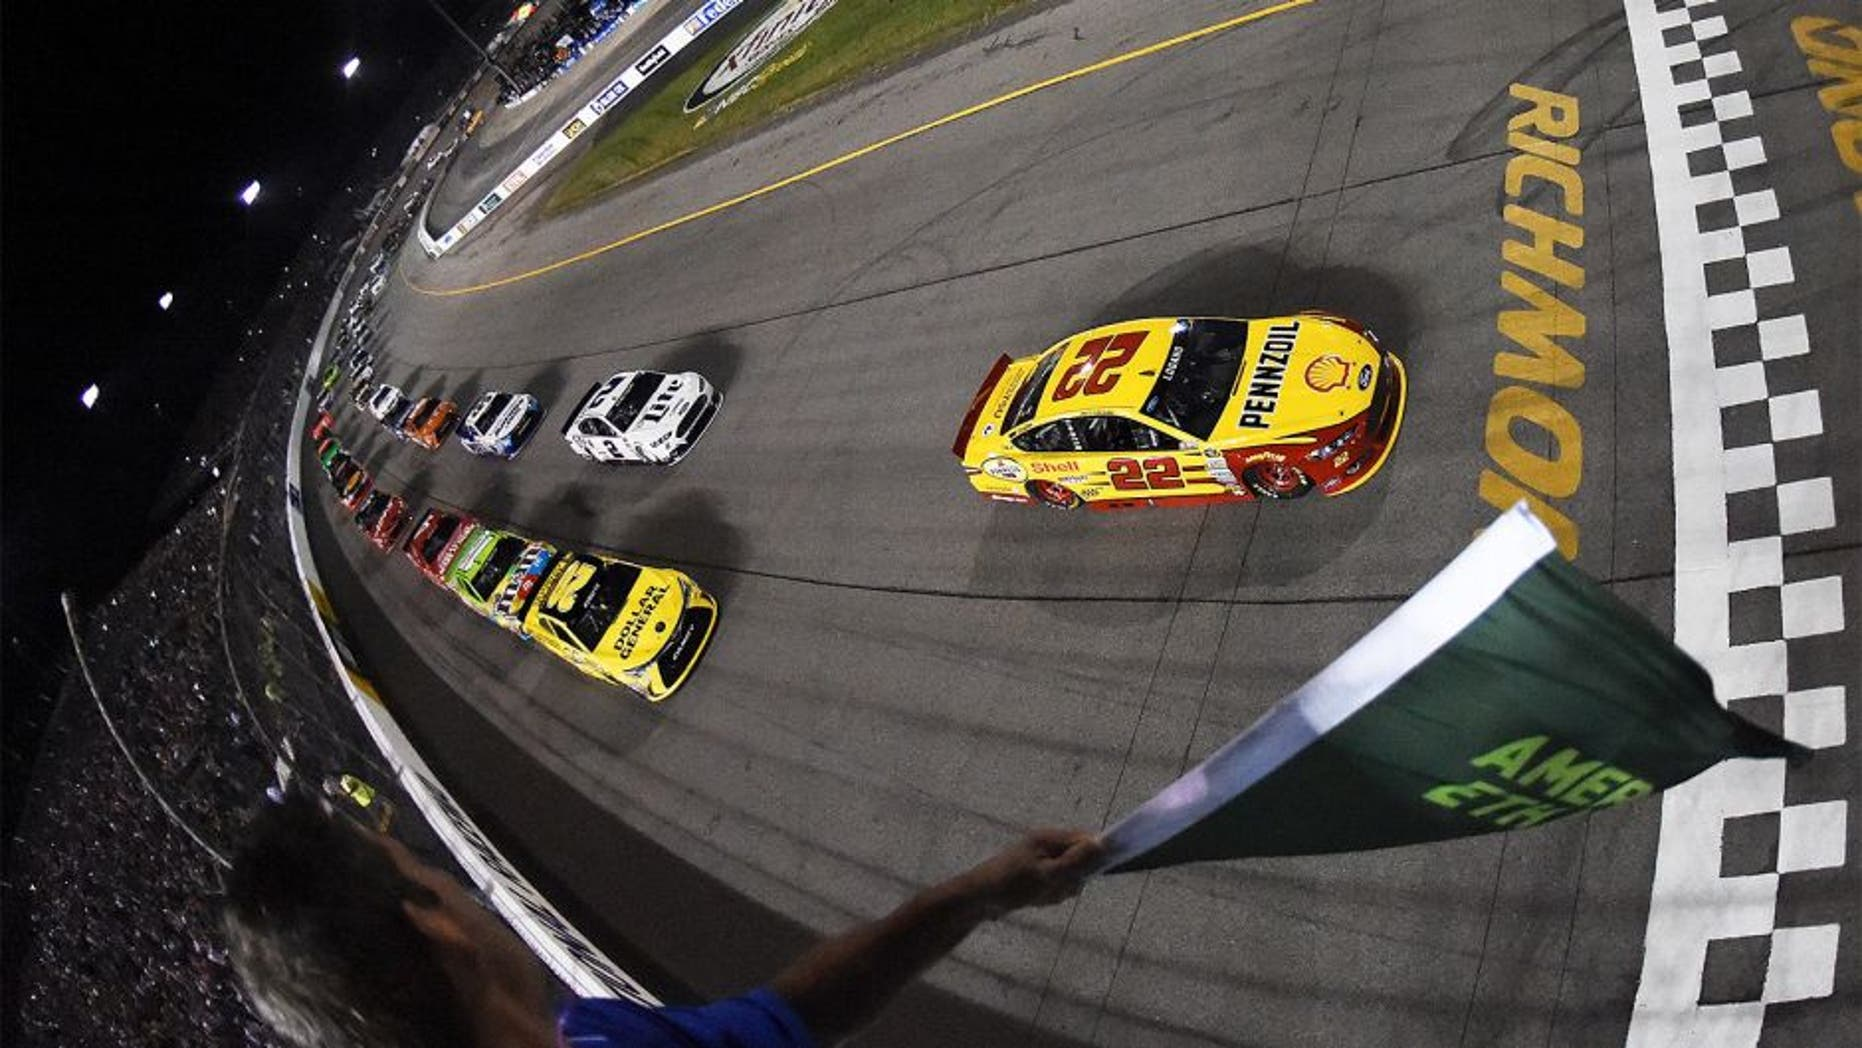 RICHMOND, VA - SEPTEMBER 12: Joey Logano, driver of the #22 Shell Pennzoil Ford, leads the field to the green flag to start the NASCAR Sprint Cup Series Federated Auto Parts 400 at Richmond International Raceway on September 12, 2015 in Richmond, Virginia. (Photo by Rainier Ehrhardt/NASCAR via Getty Images)